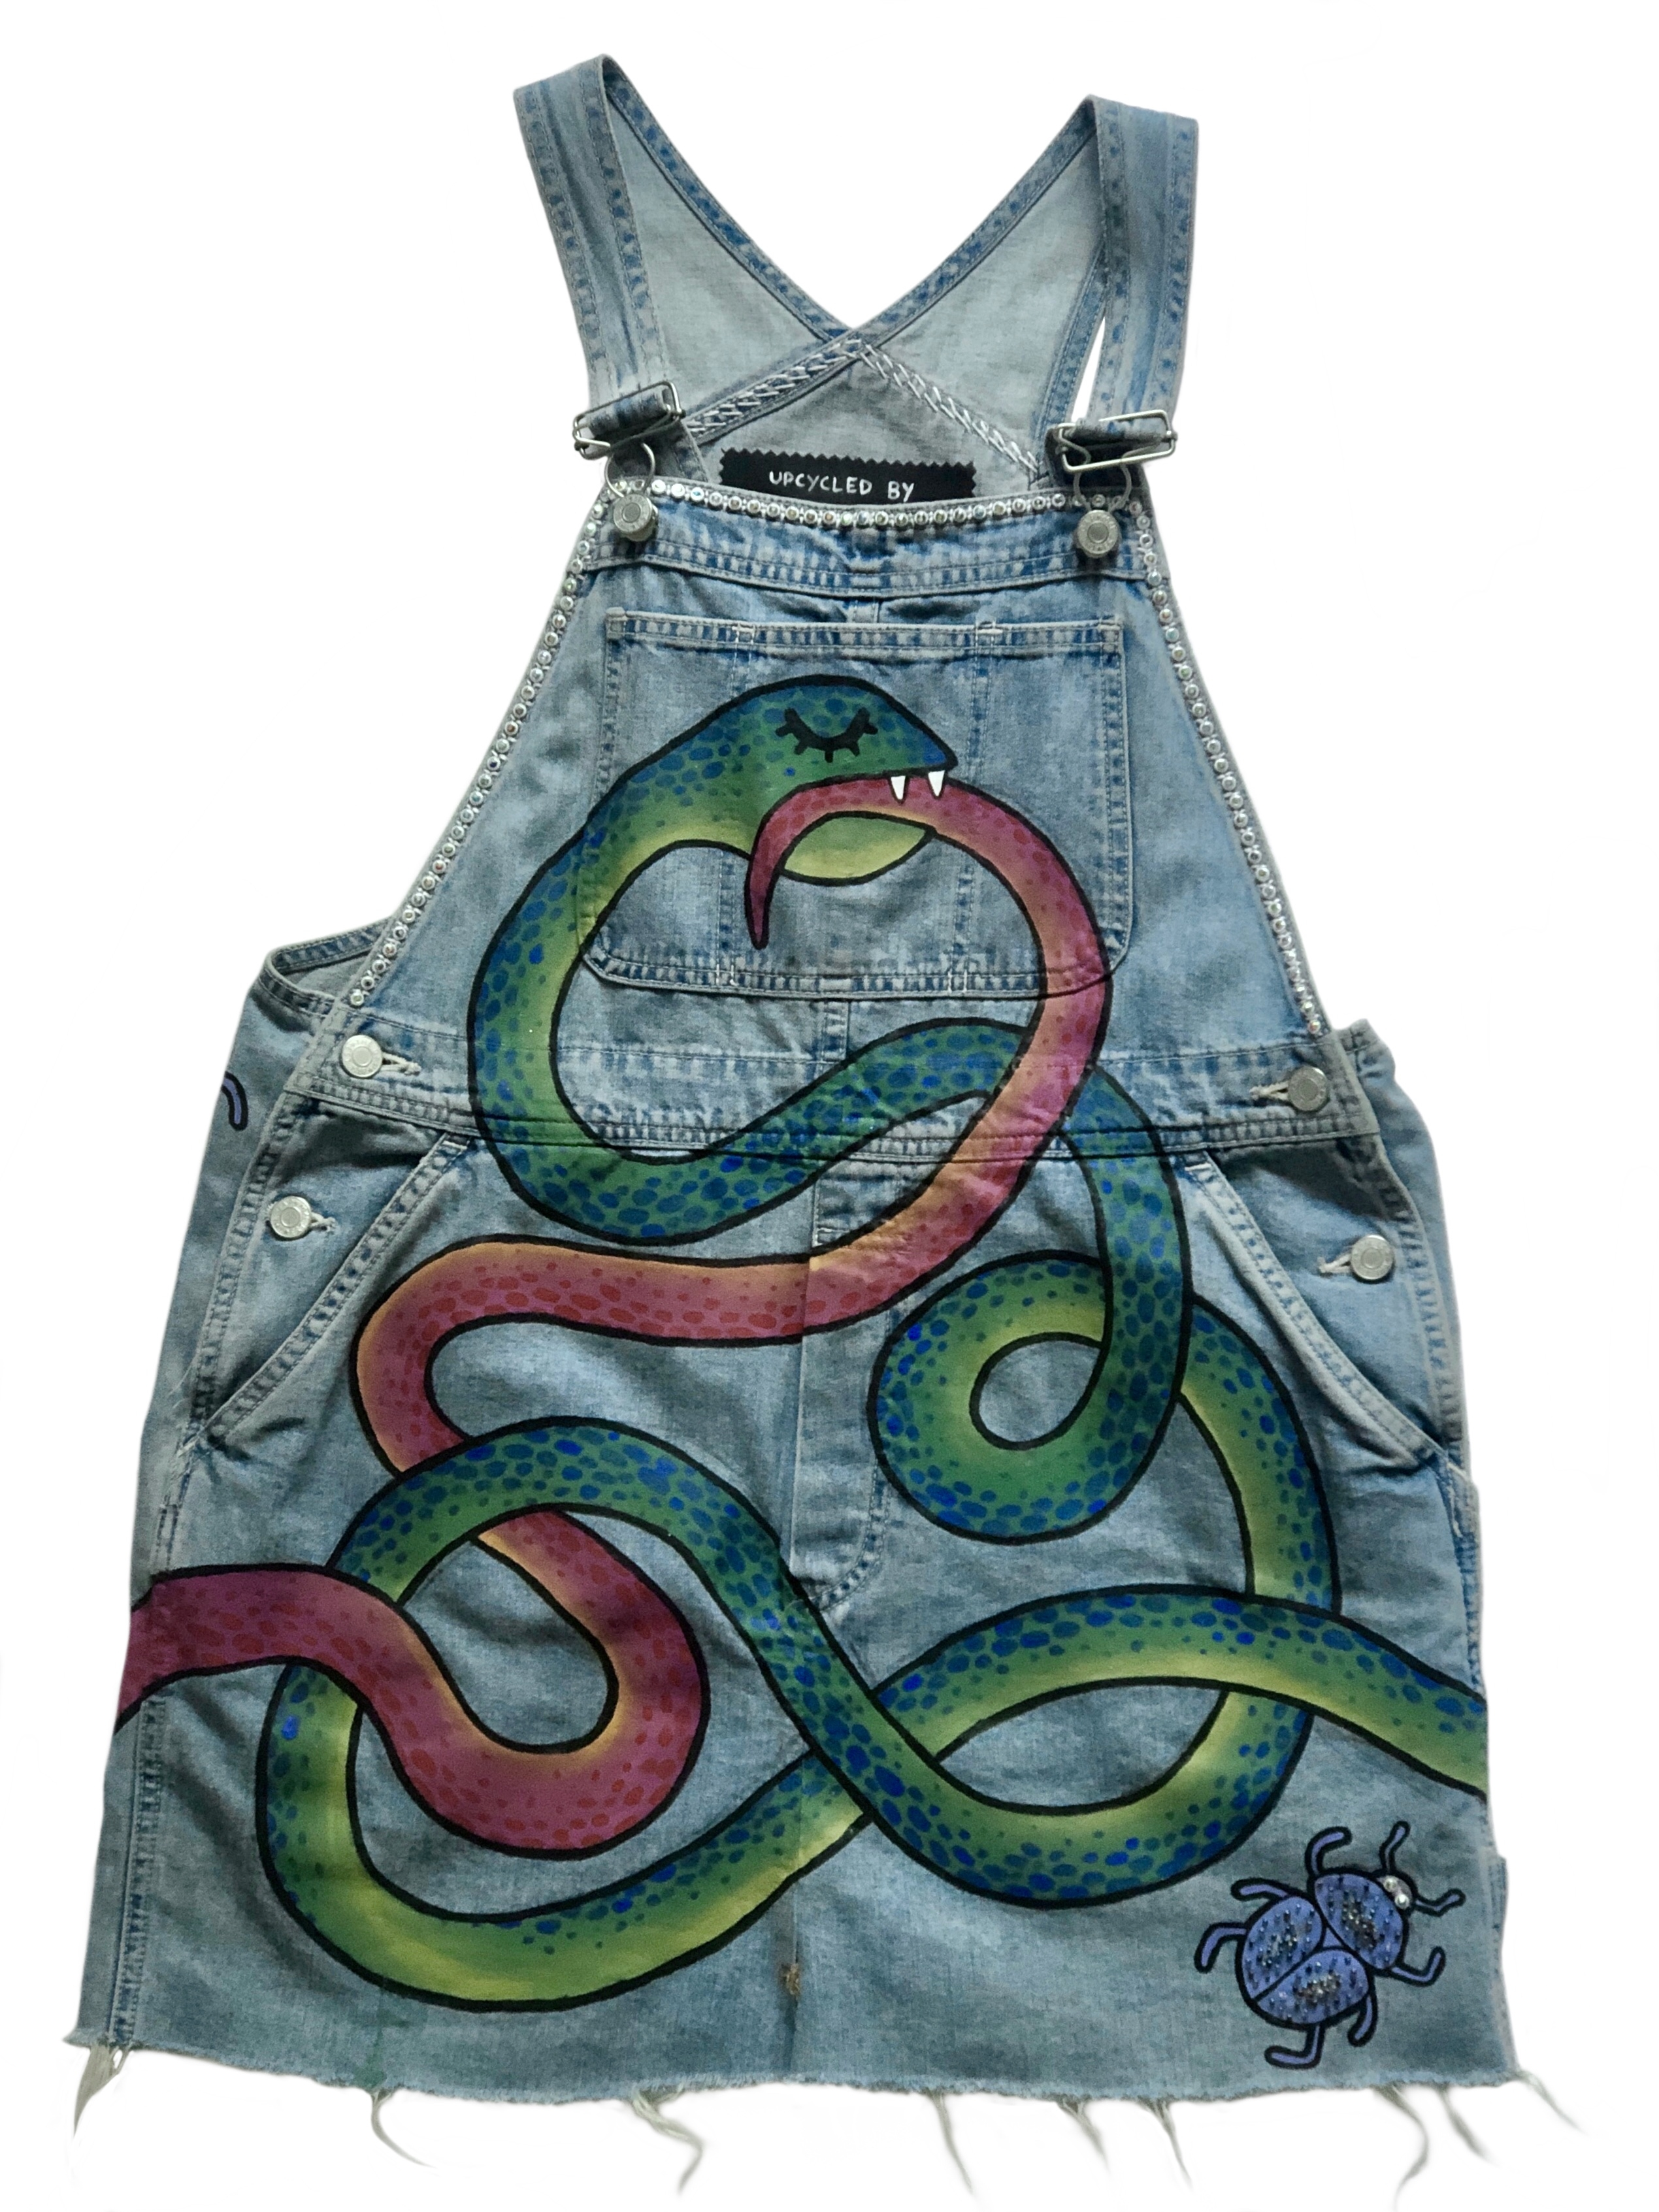 SNAKES dungarees